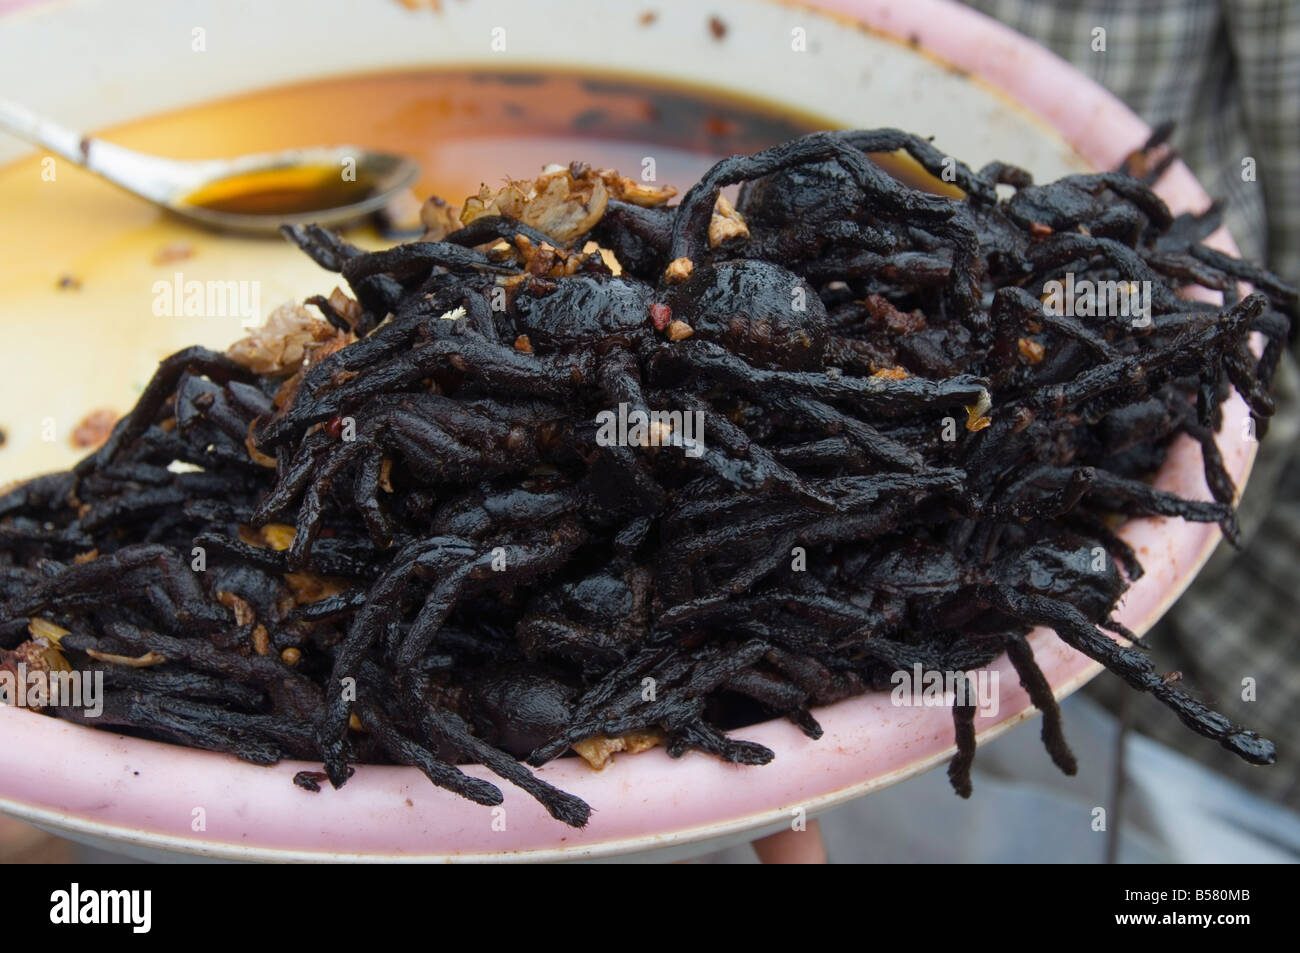 Cooked spiders for sale in market, Cambodia, Indochina, Southeast Asia, Asia - Stock Image